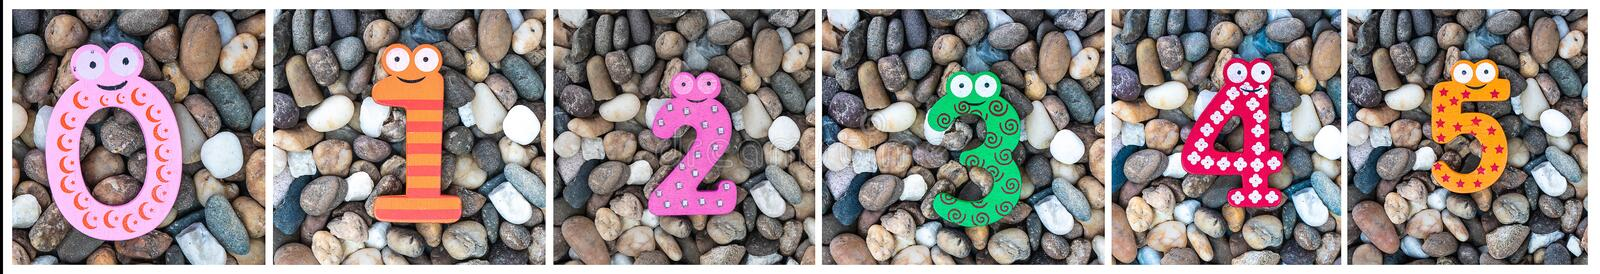 Set of colorful arabic wooden numbers 0-5 placed on pebbles pattern or small stones background in garden. Concept of number.  stock photography